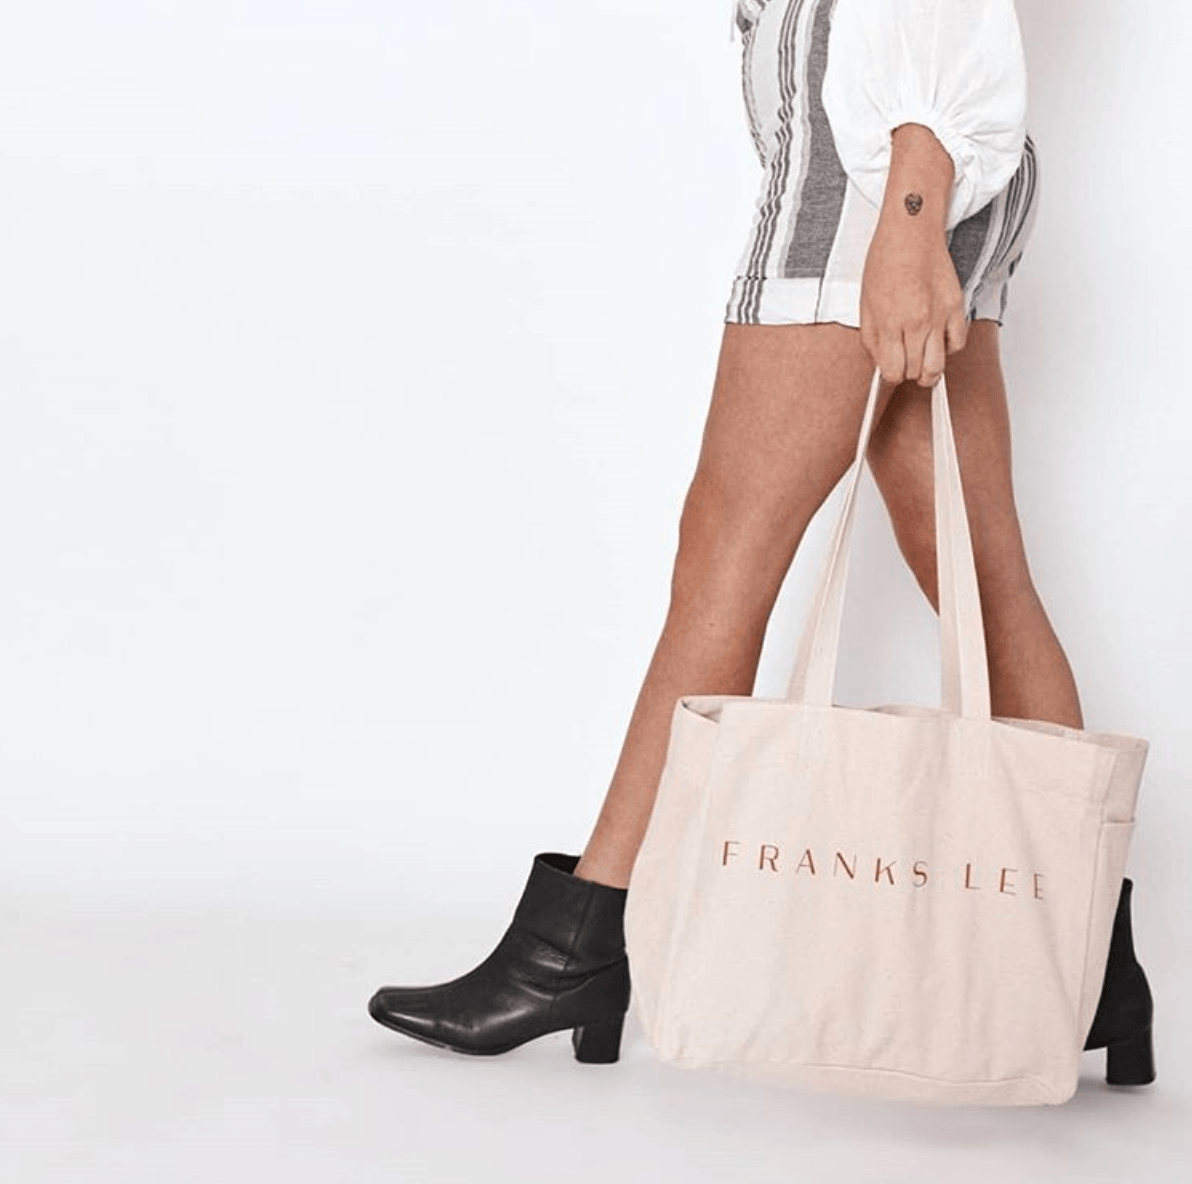 Model carrying Franks Lee bag